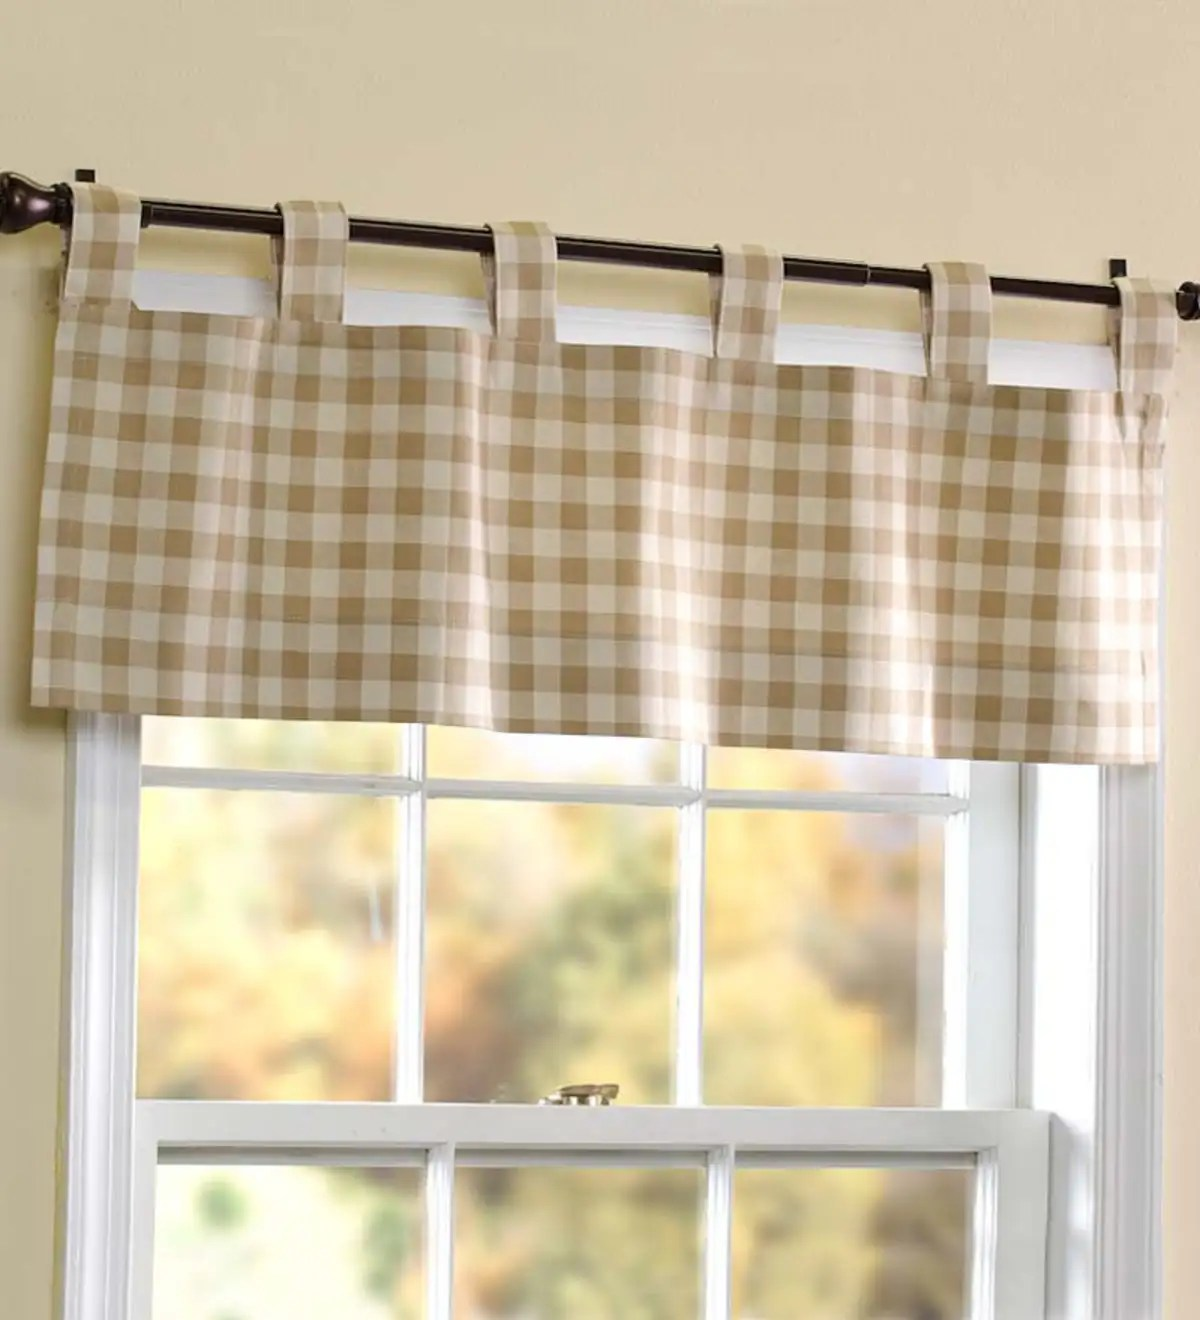 15 L X 40 W Thermalogic Check Tab Top Valance Curtain